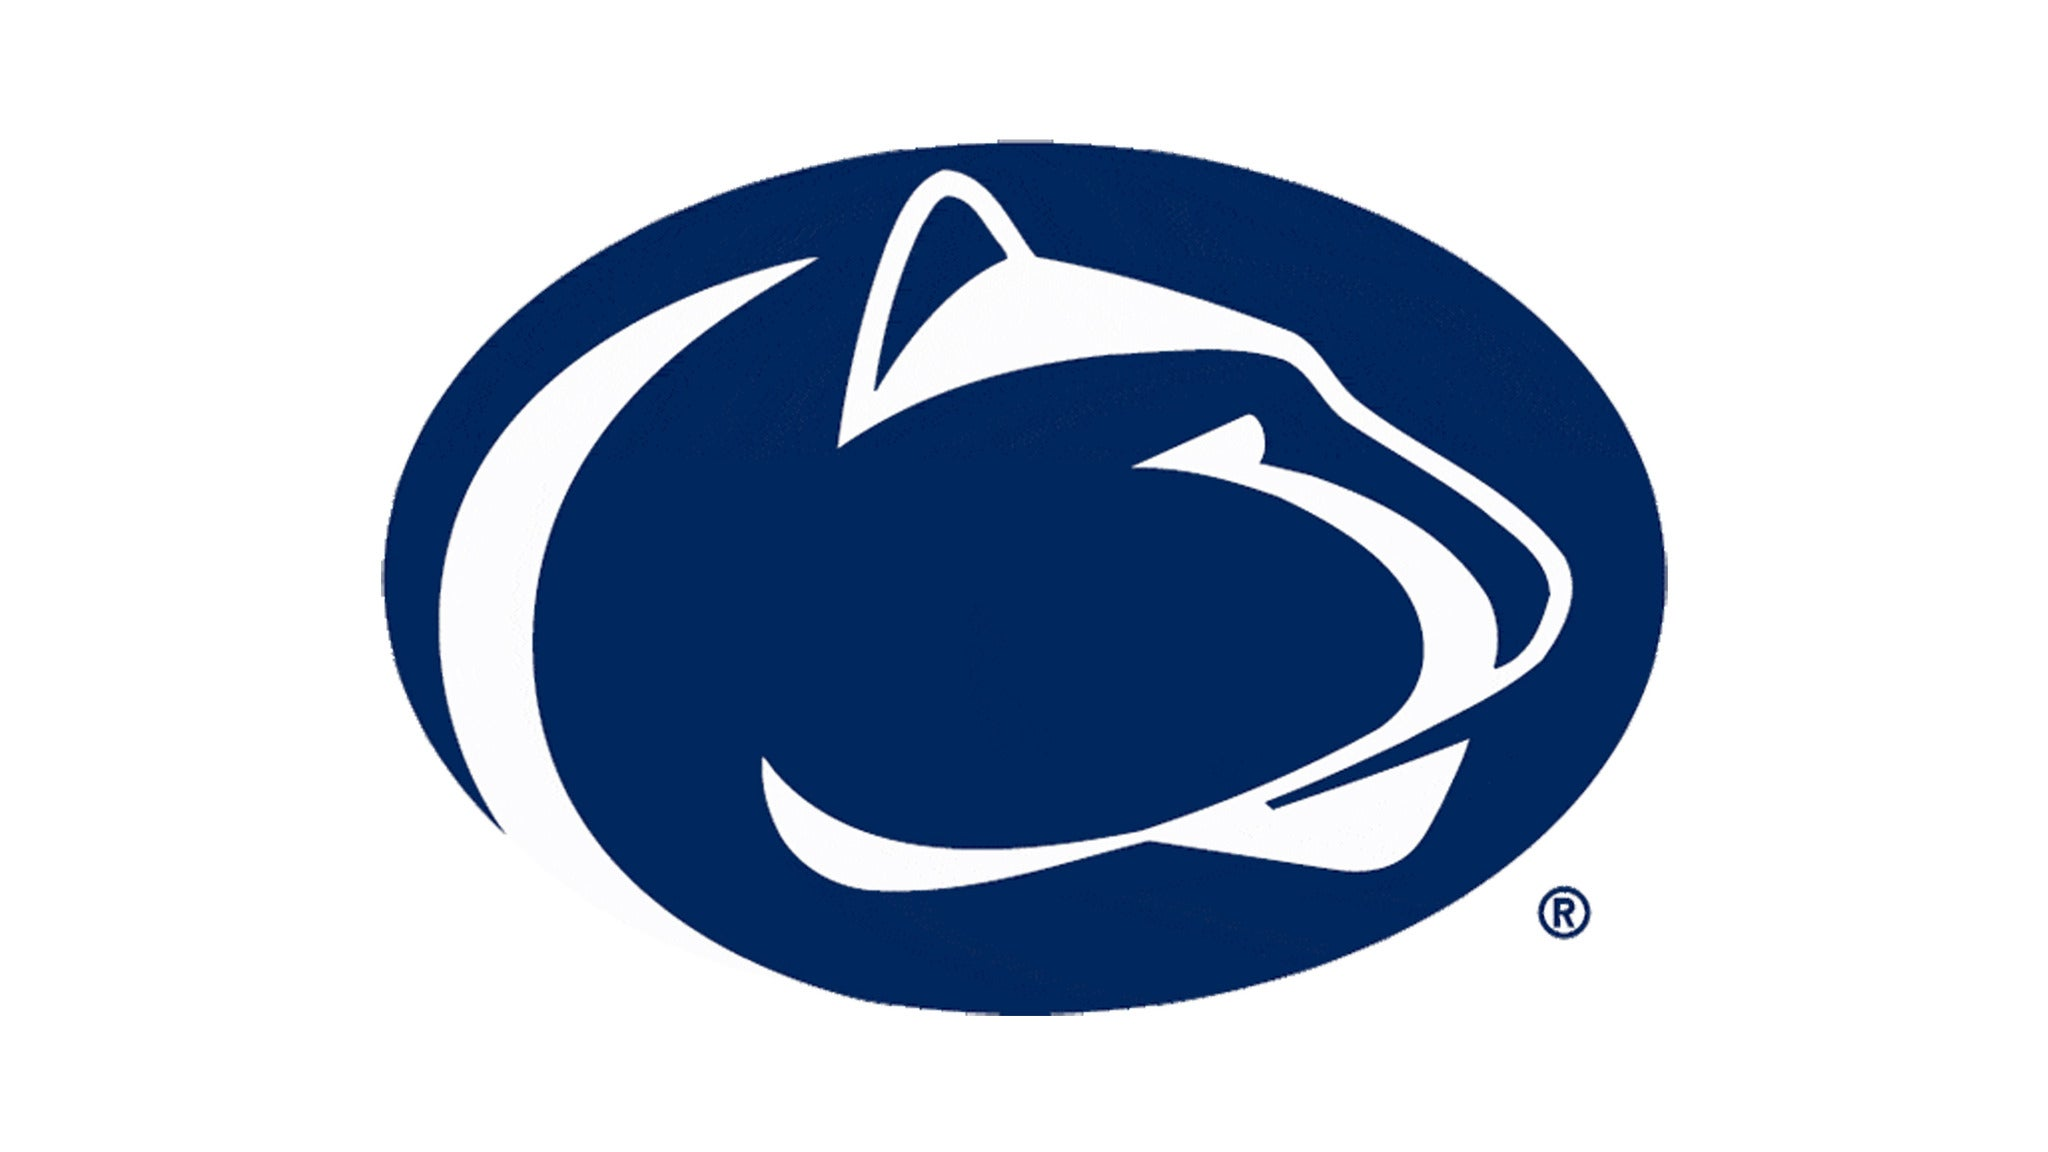 Penn State Nittany Lions vs. University of Michigan Wolverines Football